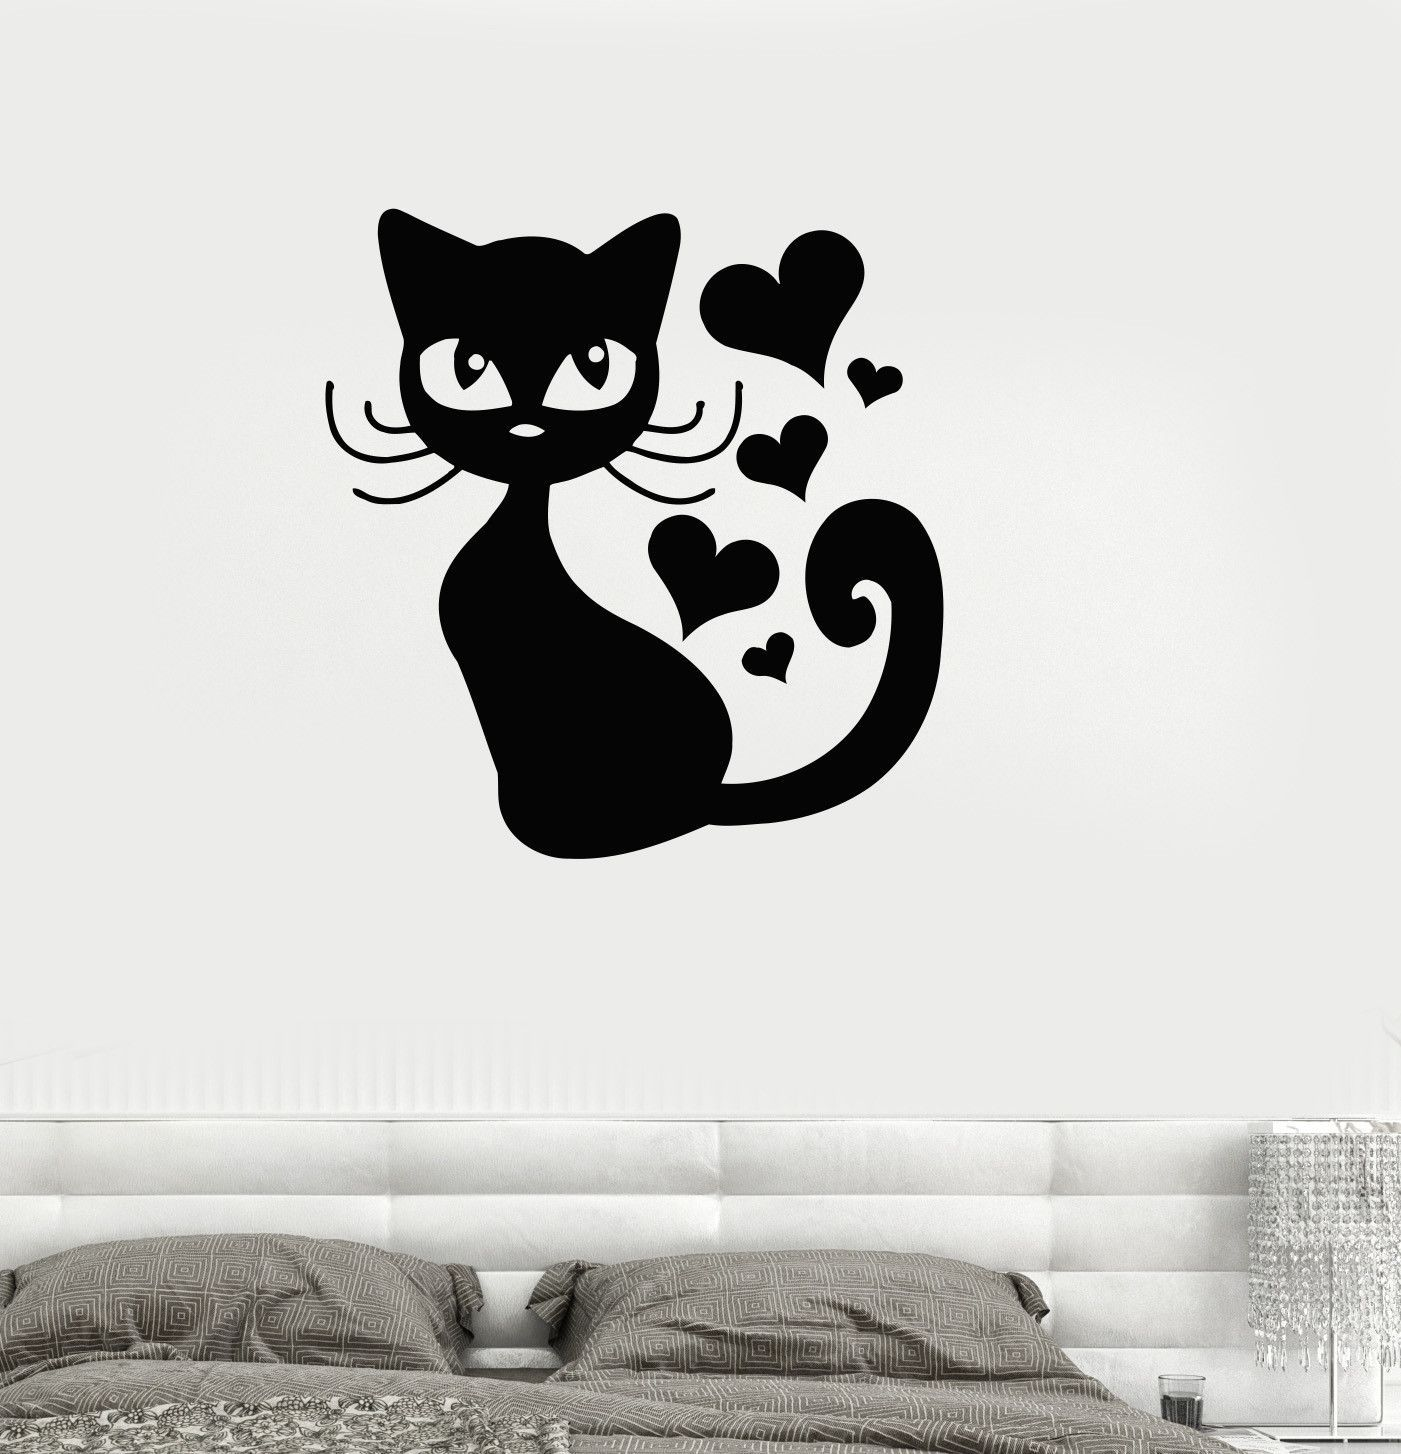 Vinyl Decal Cat Kitten Love Romantic Pet Bedroom Decor Wall - Vinyl decal cat pinterest